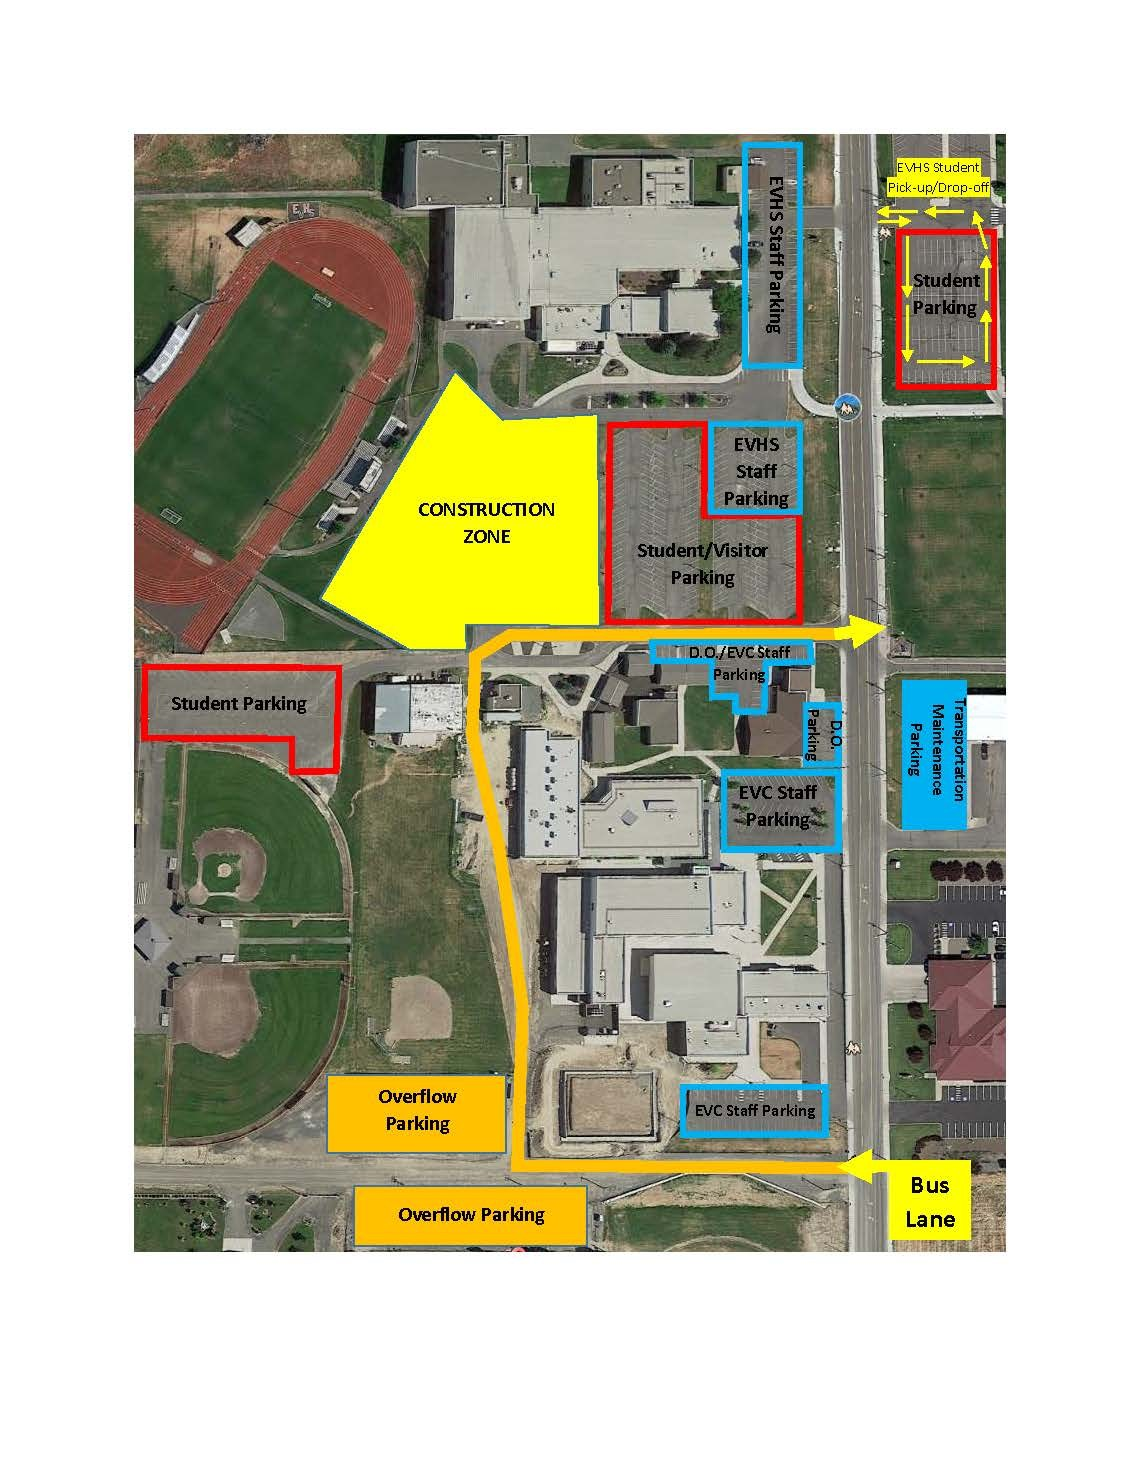 map showing the three available parking lots for student parking at East Valley High School.